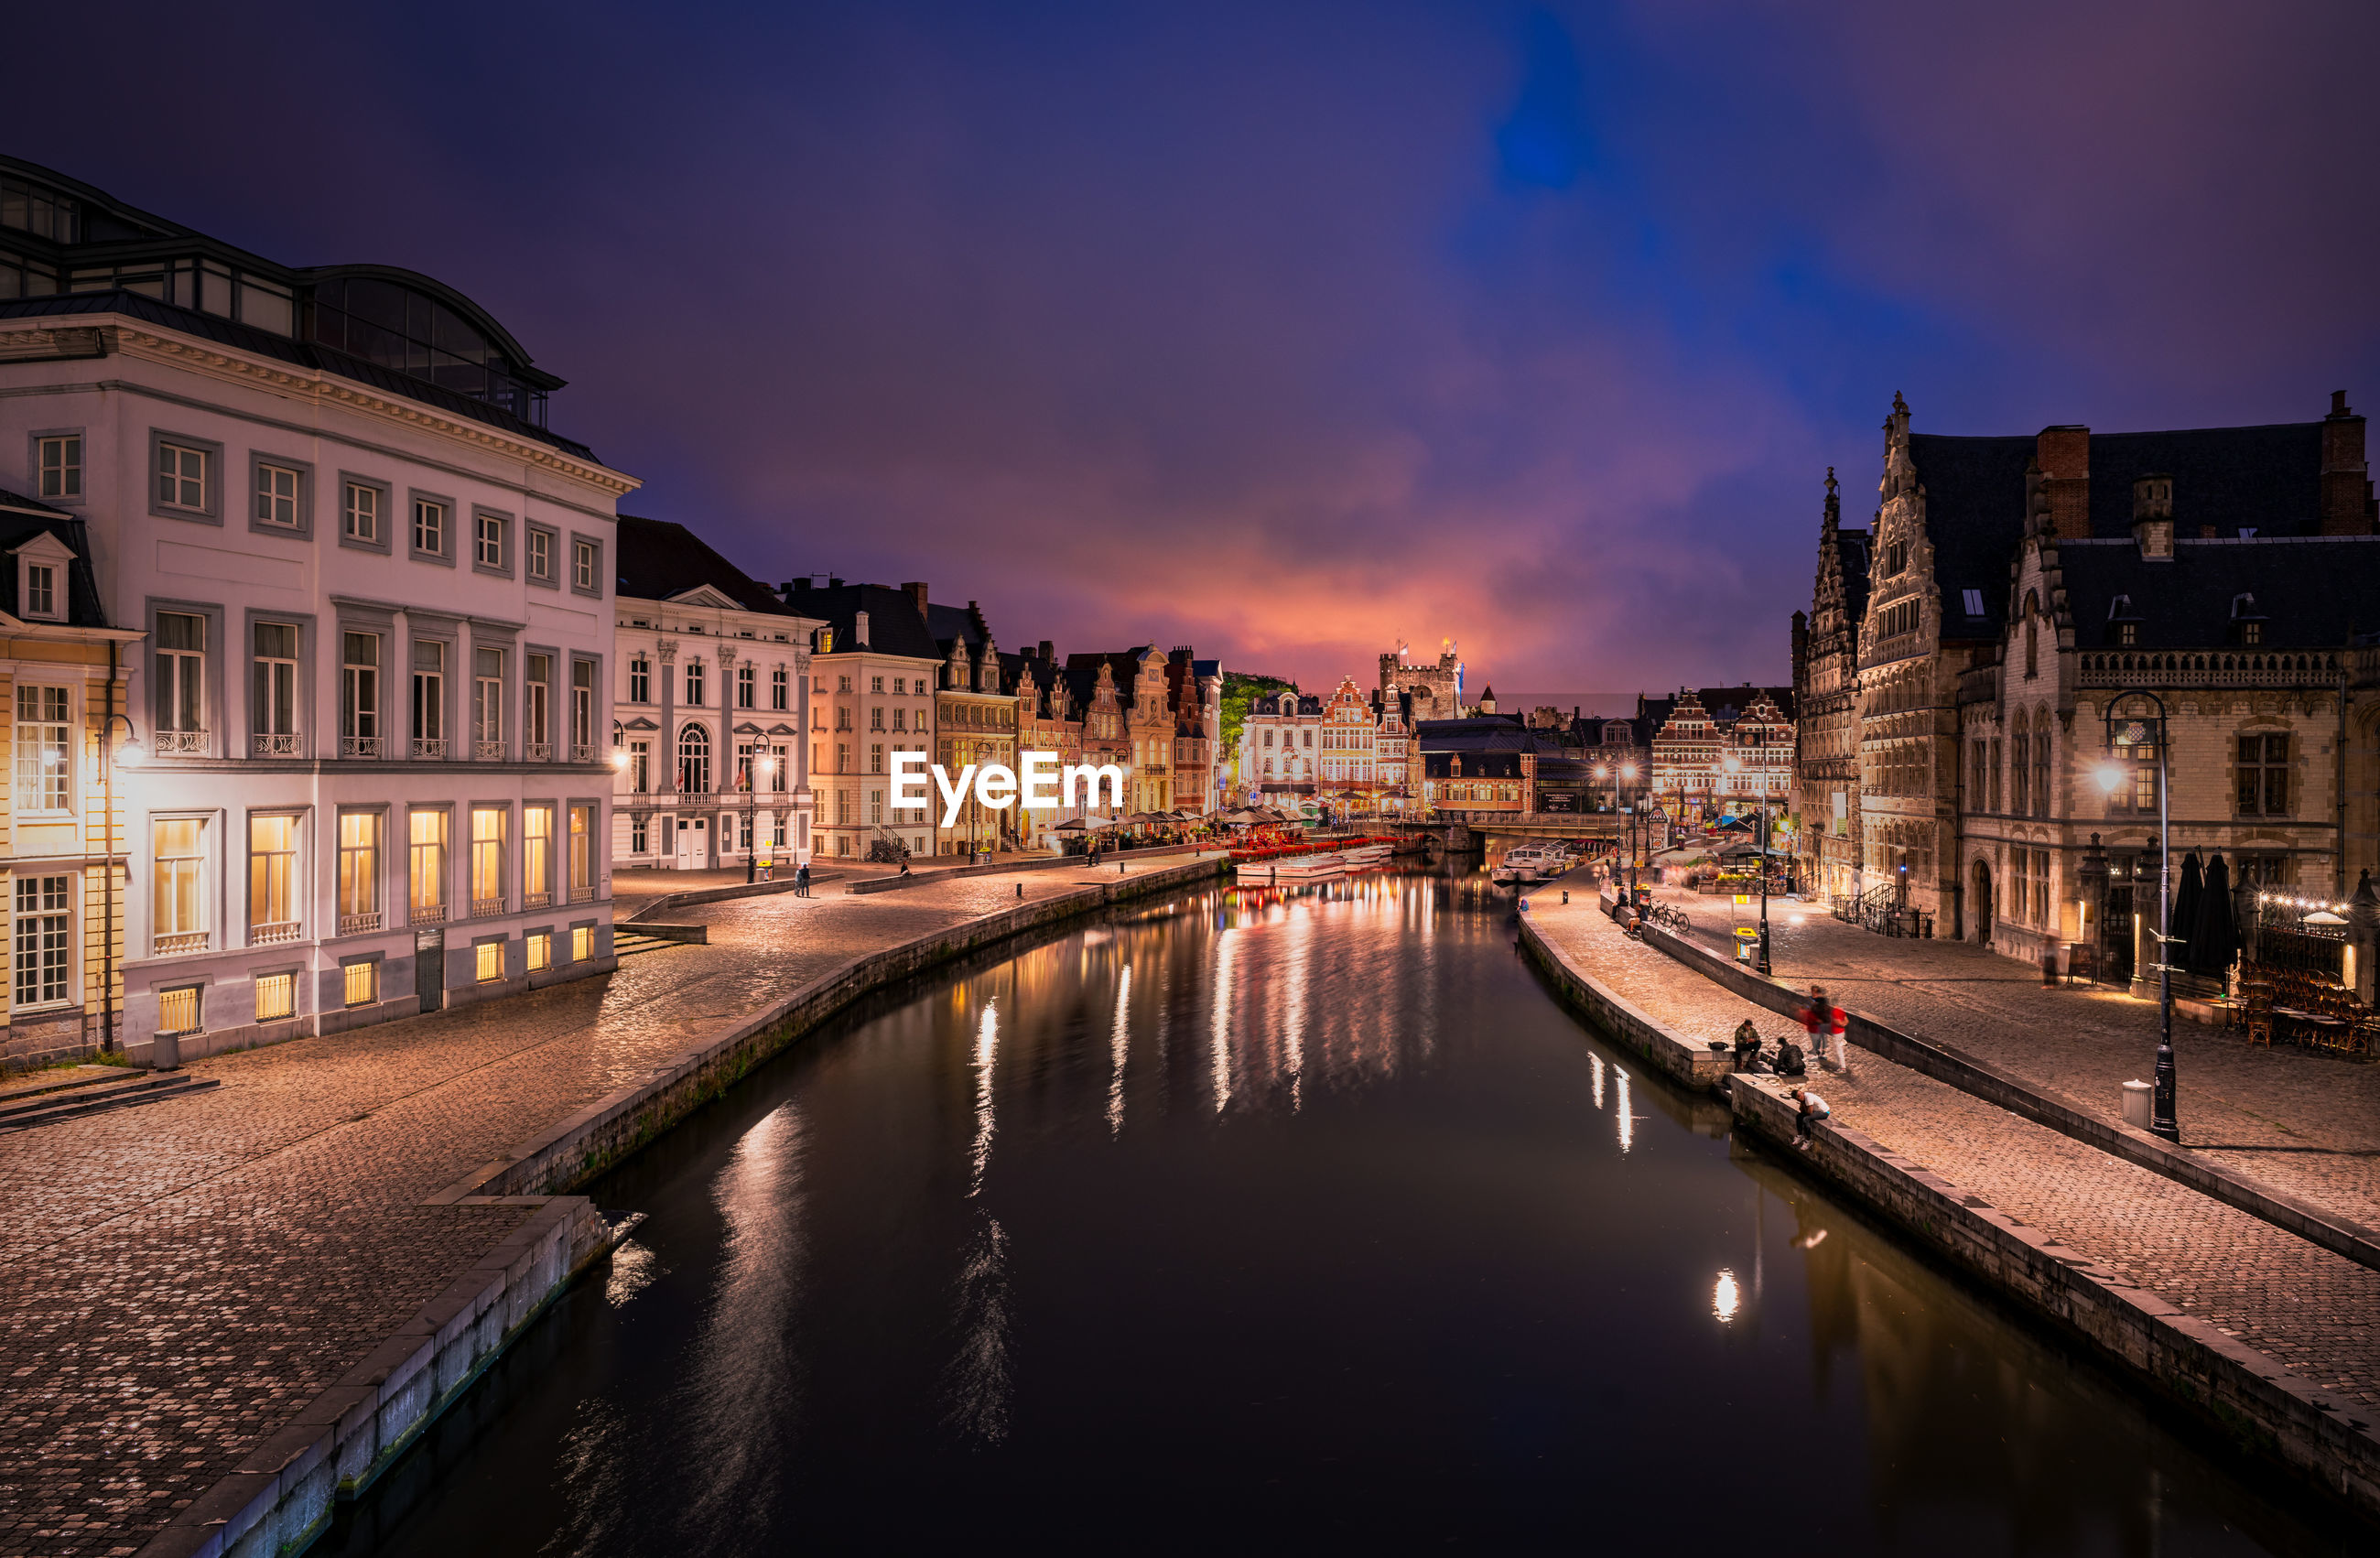 CANAL AMIDST ILLUMINATED CITY BUILDINGS AT NIGHT